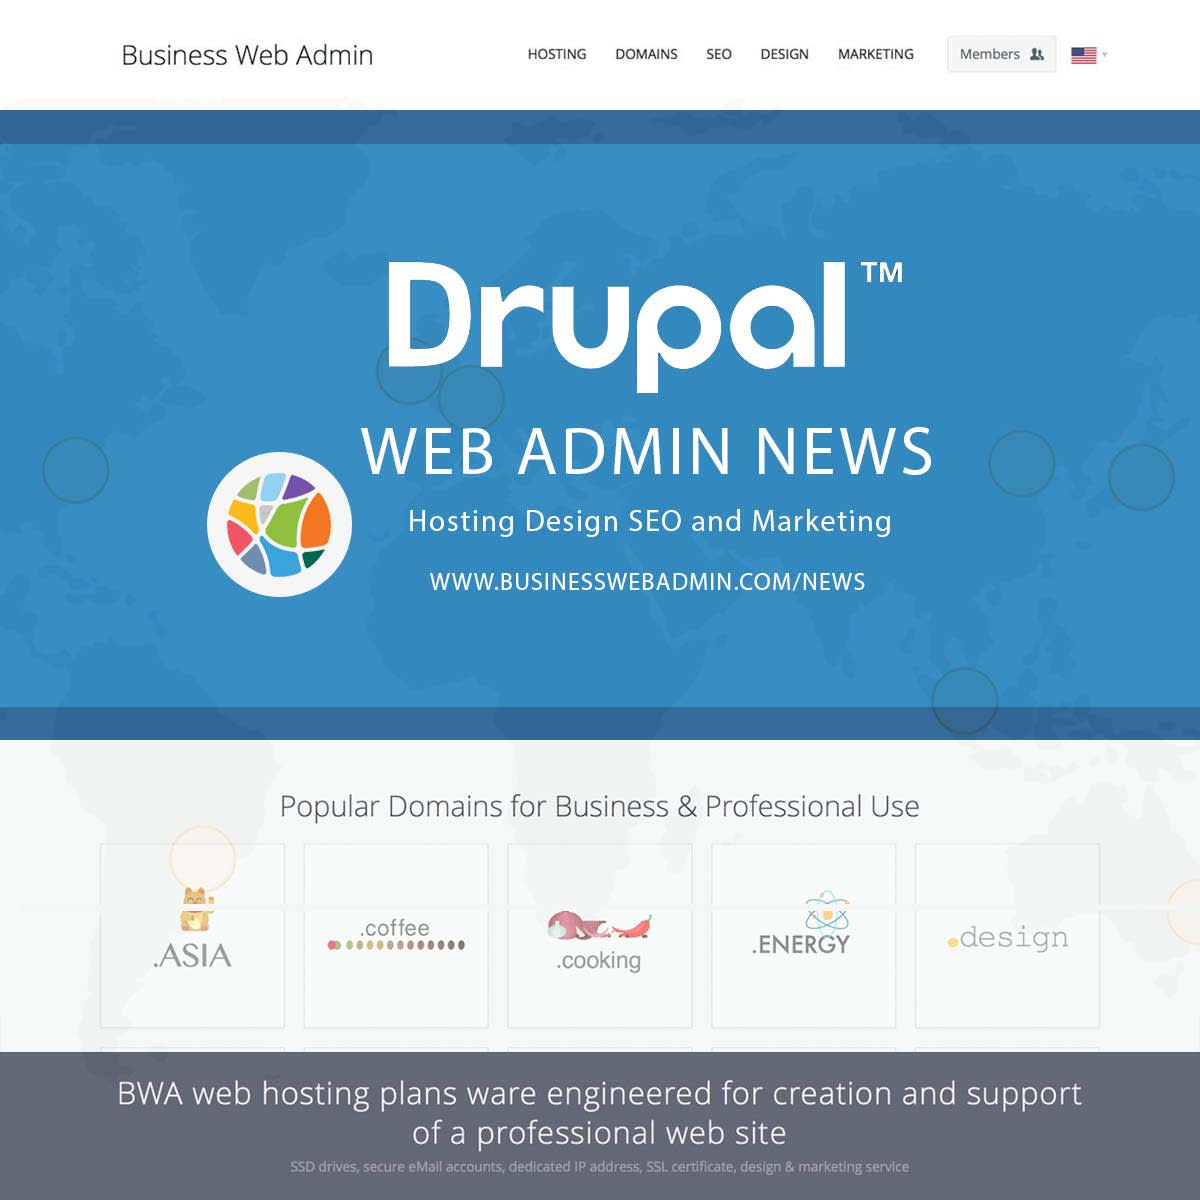 Drupal News Digest | Page 3 | Business Web Admin